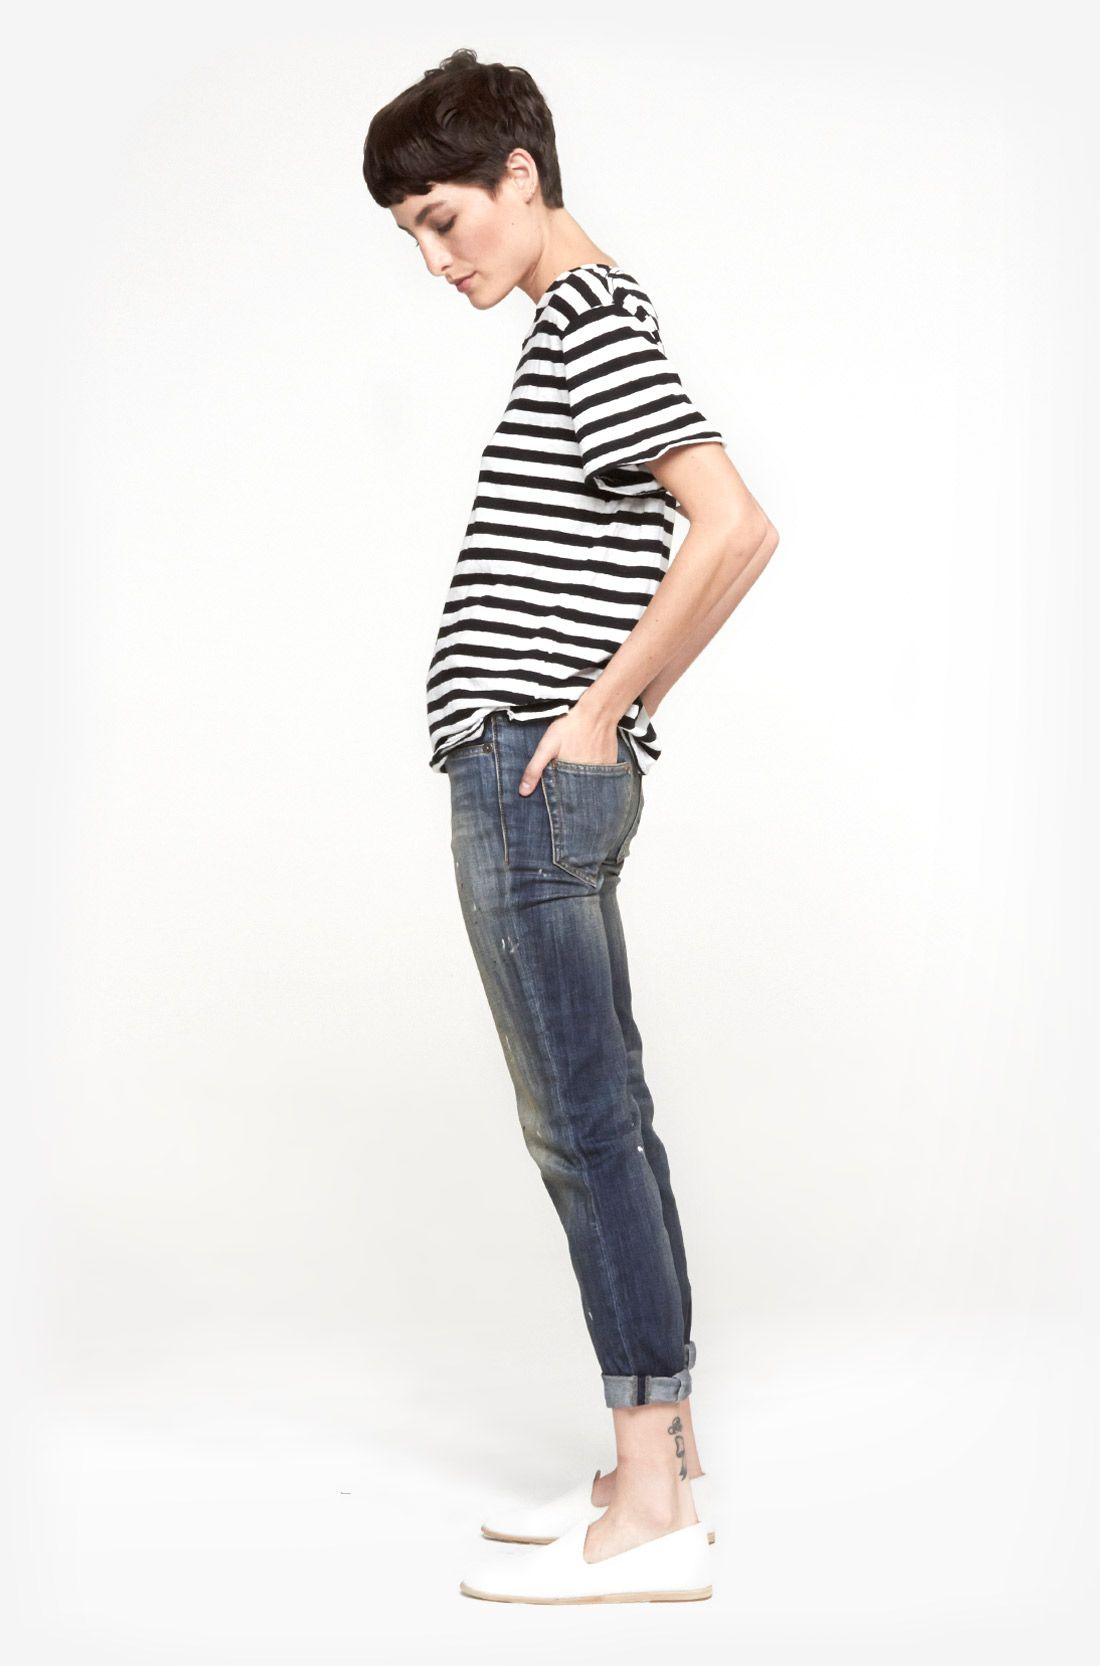 Skinny and stripes with white shoes | Basic Black and White